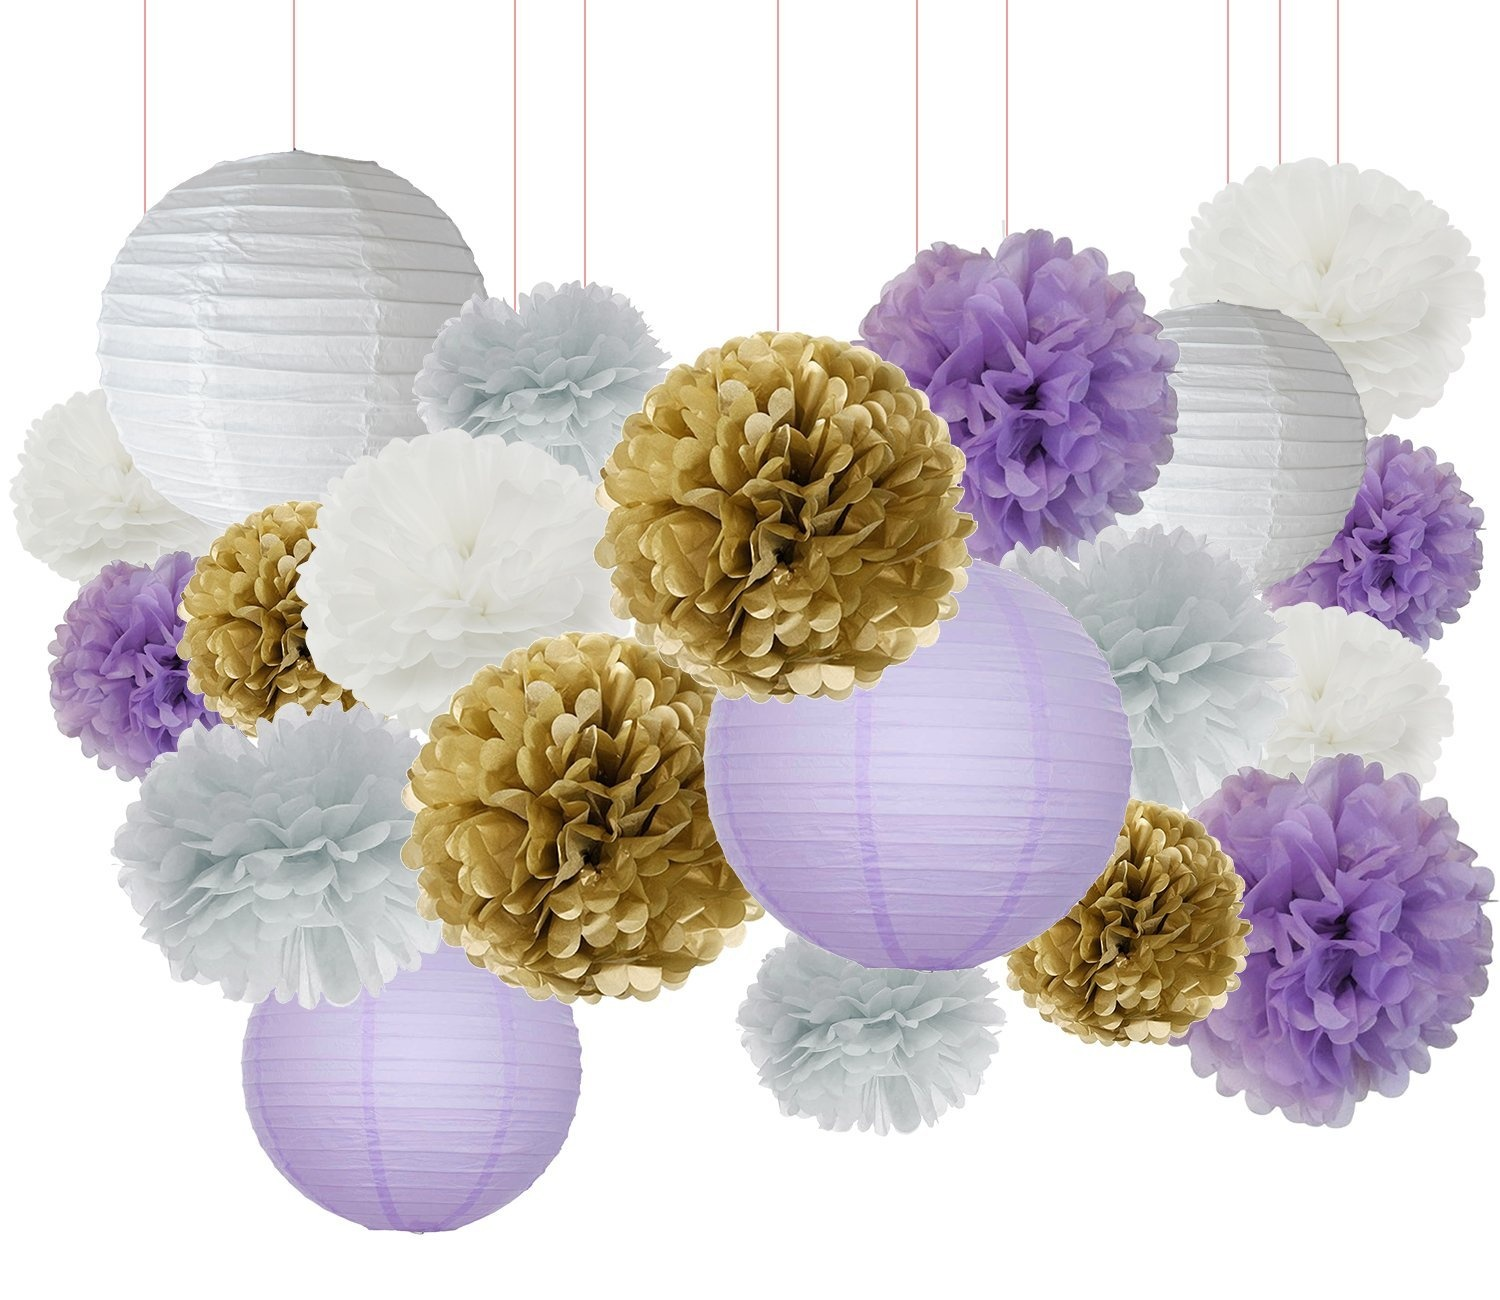 e25a87fe26d0 Furuix Big Size White Navy Blue Gold 30cm Tissue Paper Pom Pom Paper  Lanterns for Navy Blue Themed Party Wedding Paper Garland